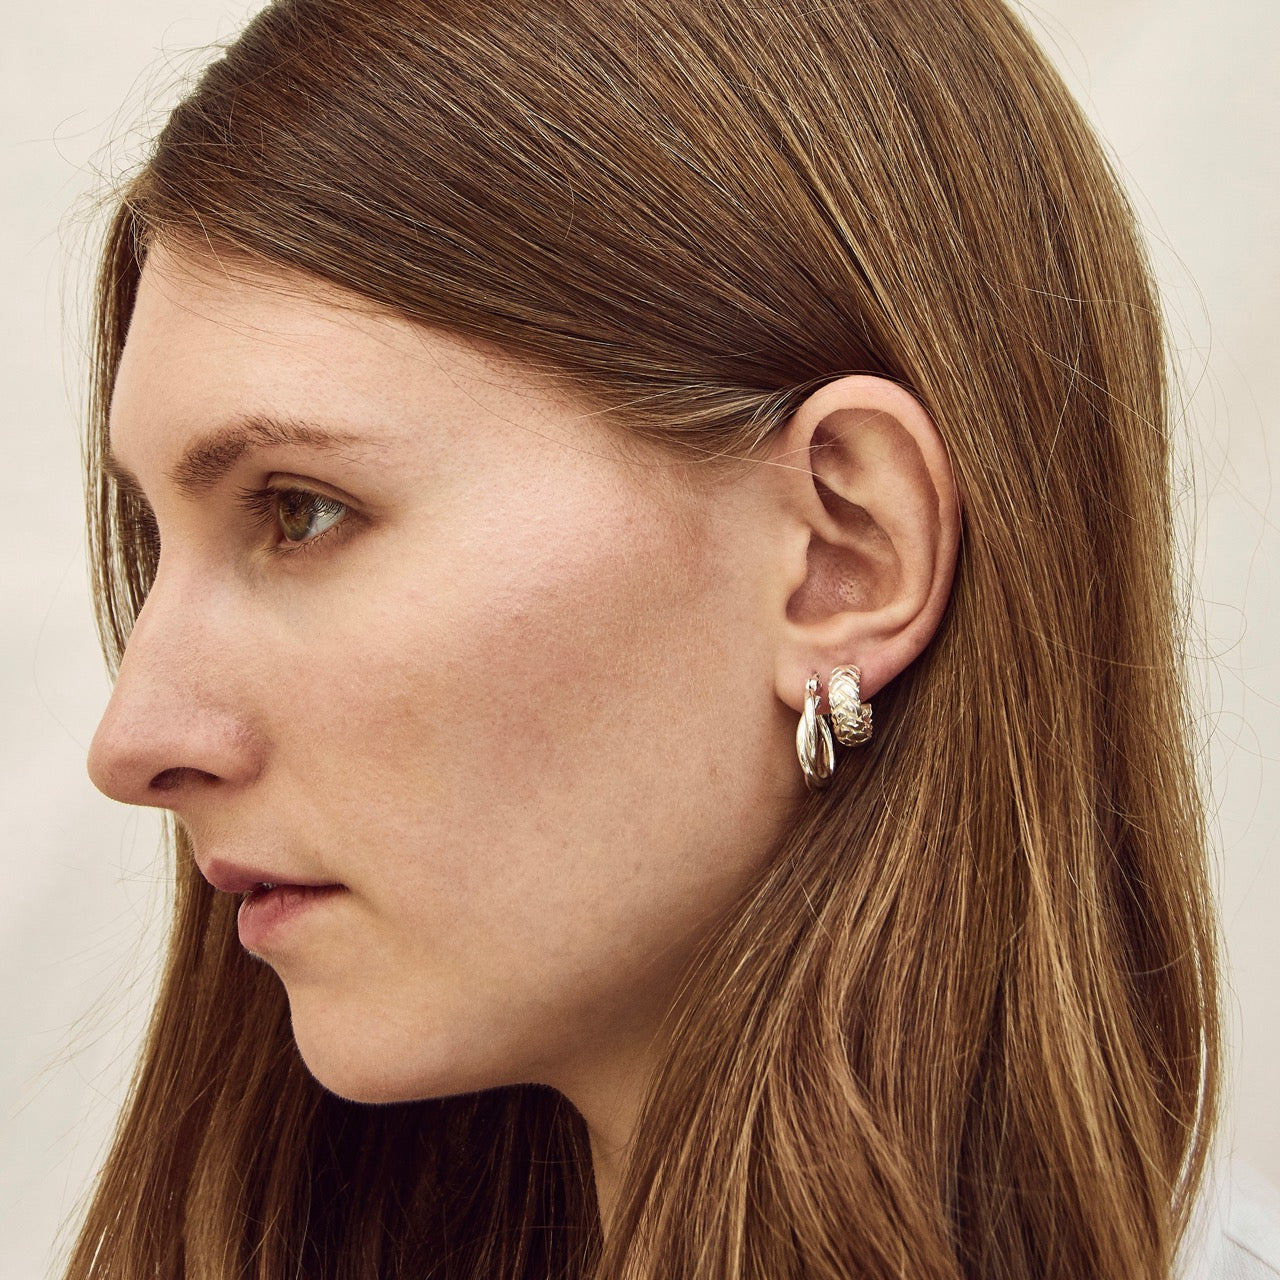 Alexa Dome Hoop Earrings